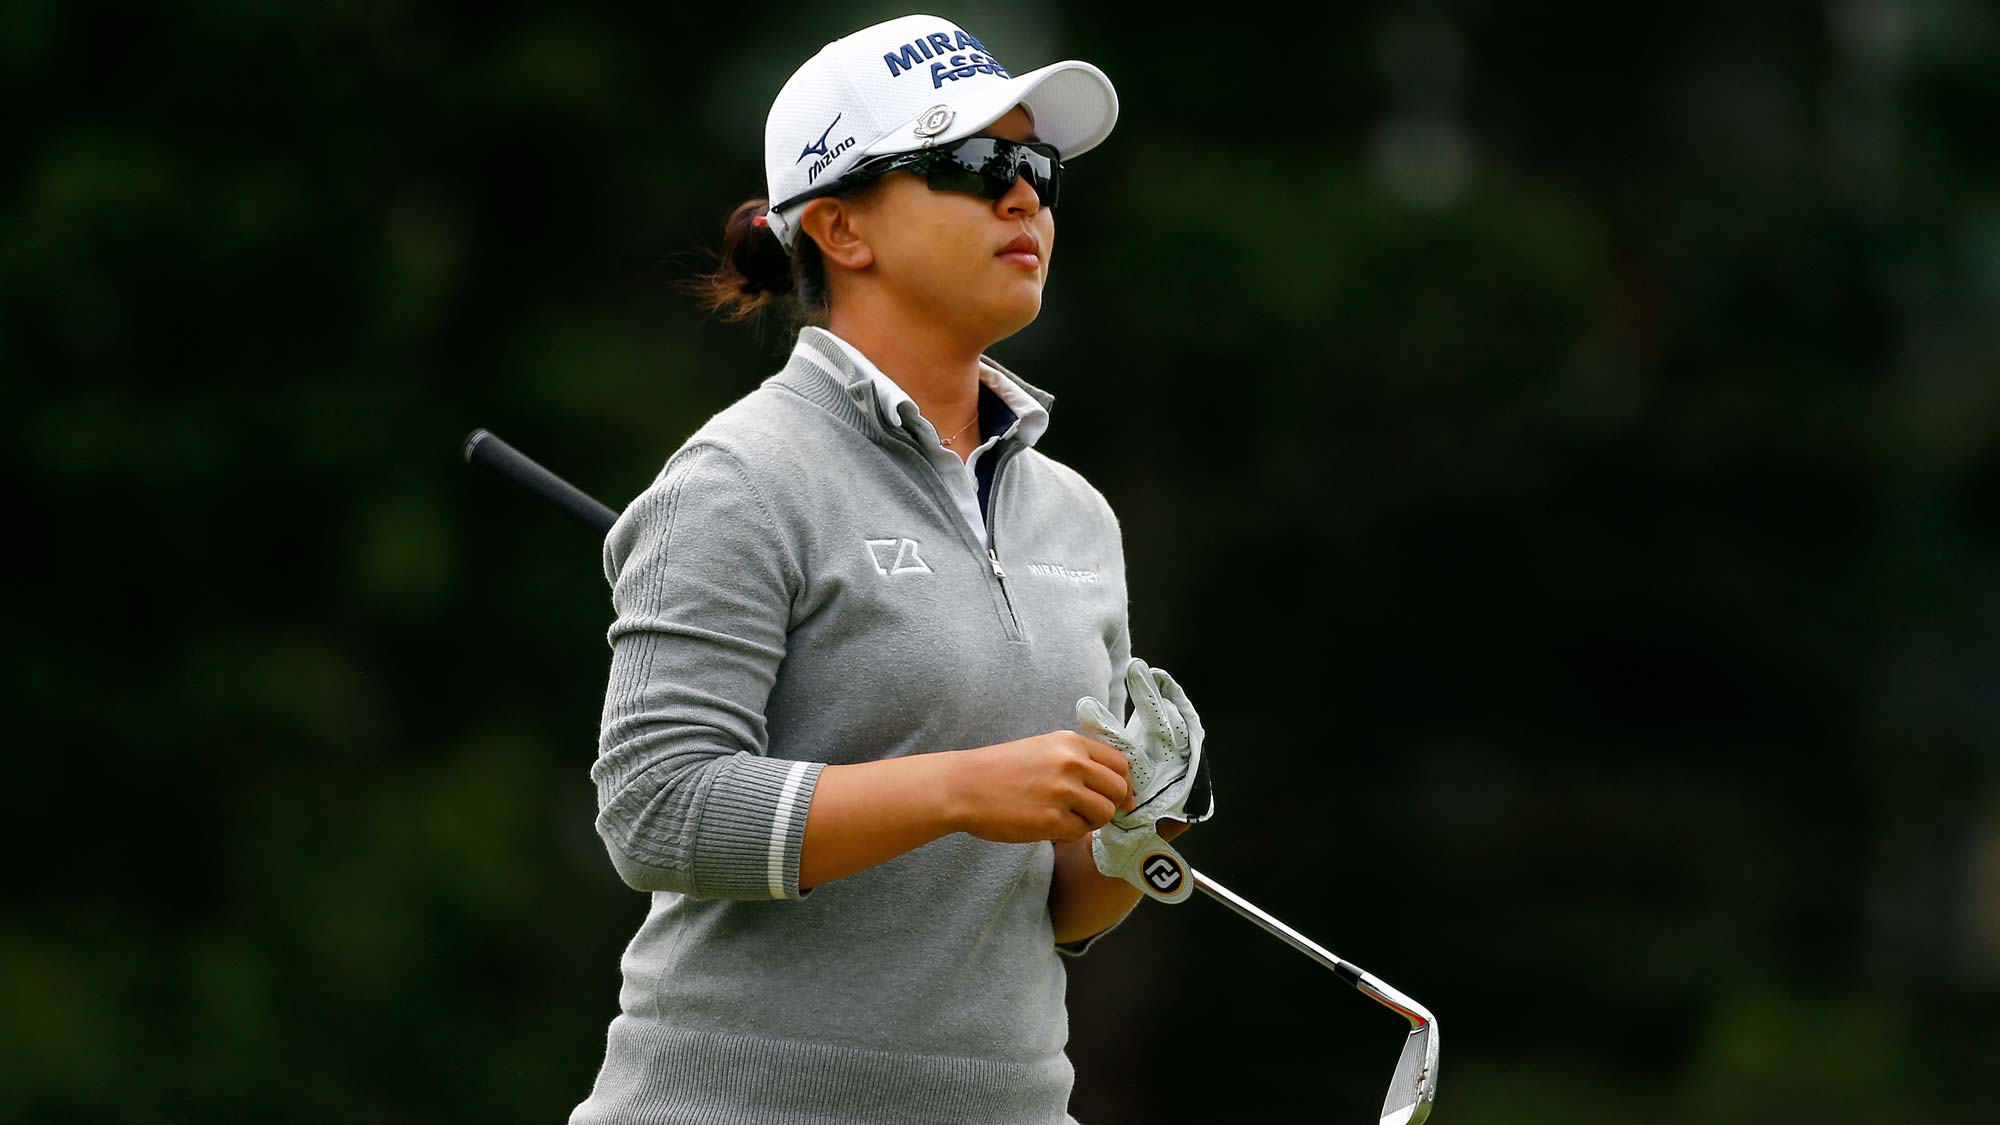 Sei Young Kim of South Korea walks on the 3rd hole during the final round of the LPGA Mediheal Championship